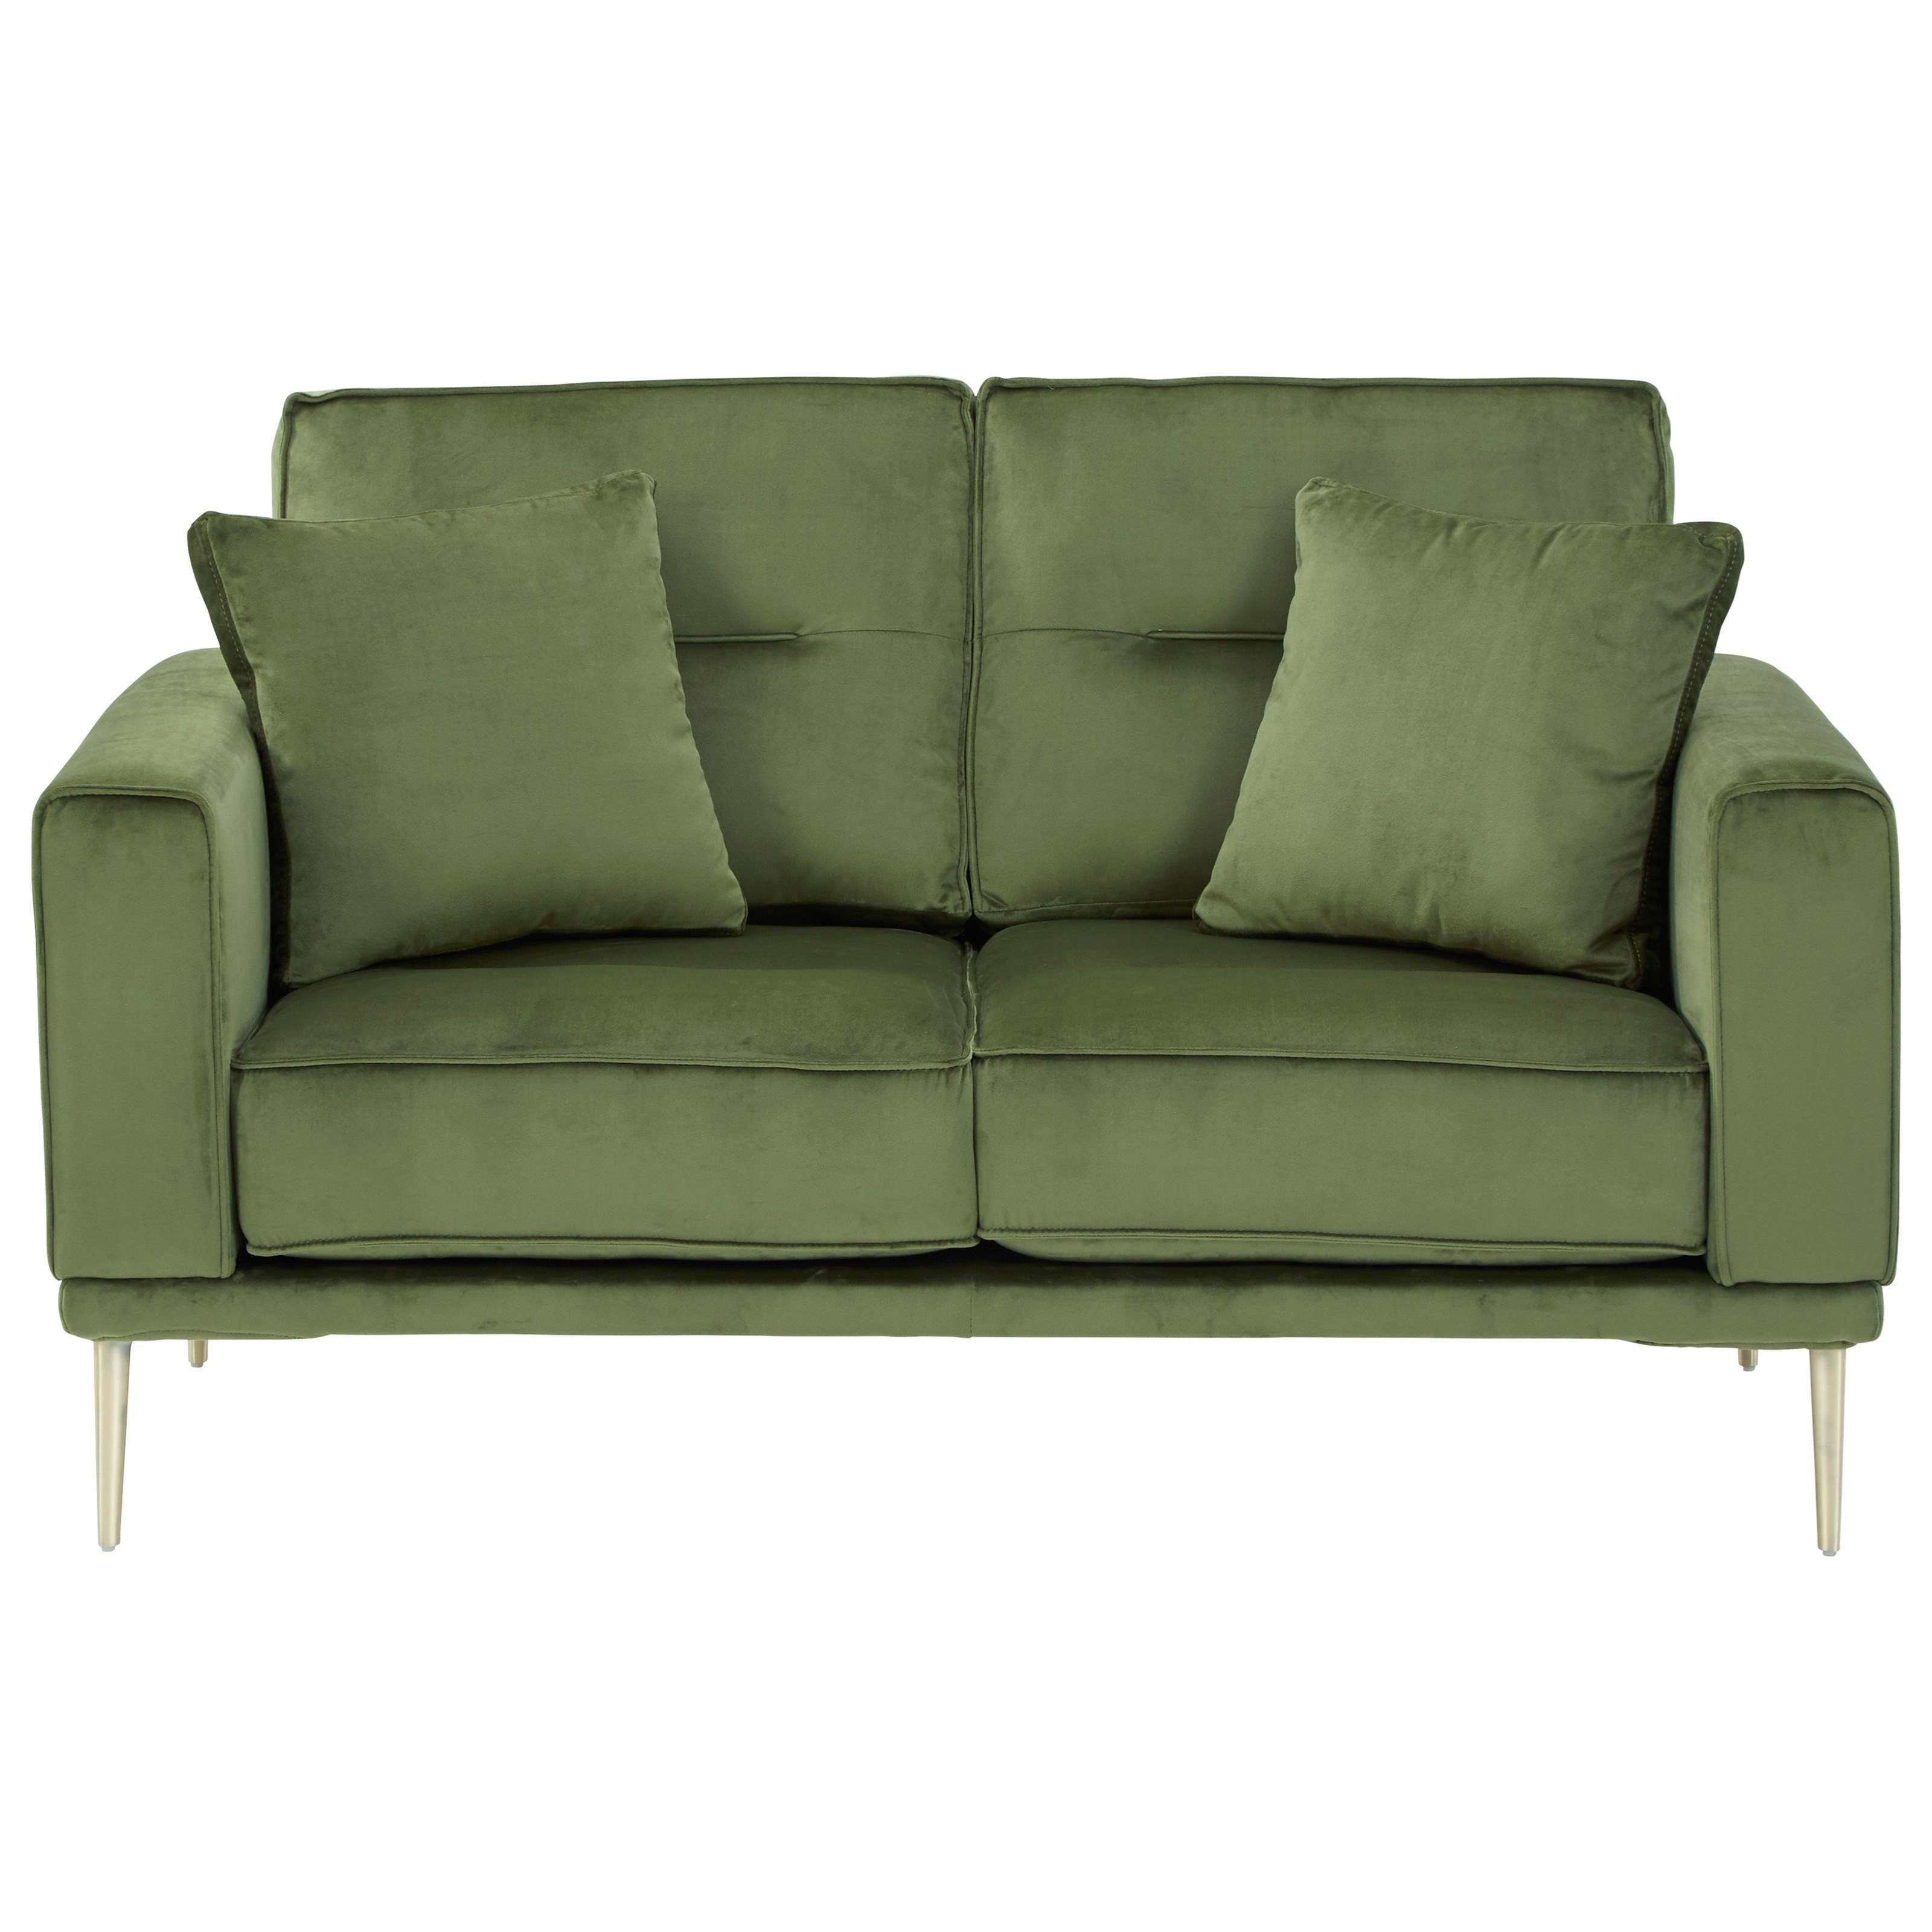 Macleary Loveseat by Signature Design by Ashley at Northeast Factory Direct